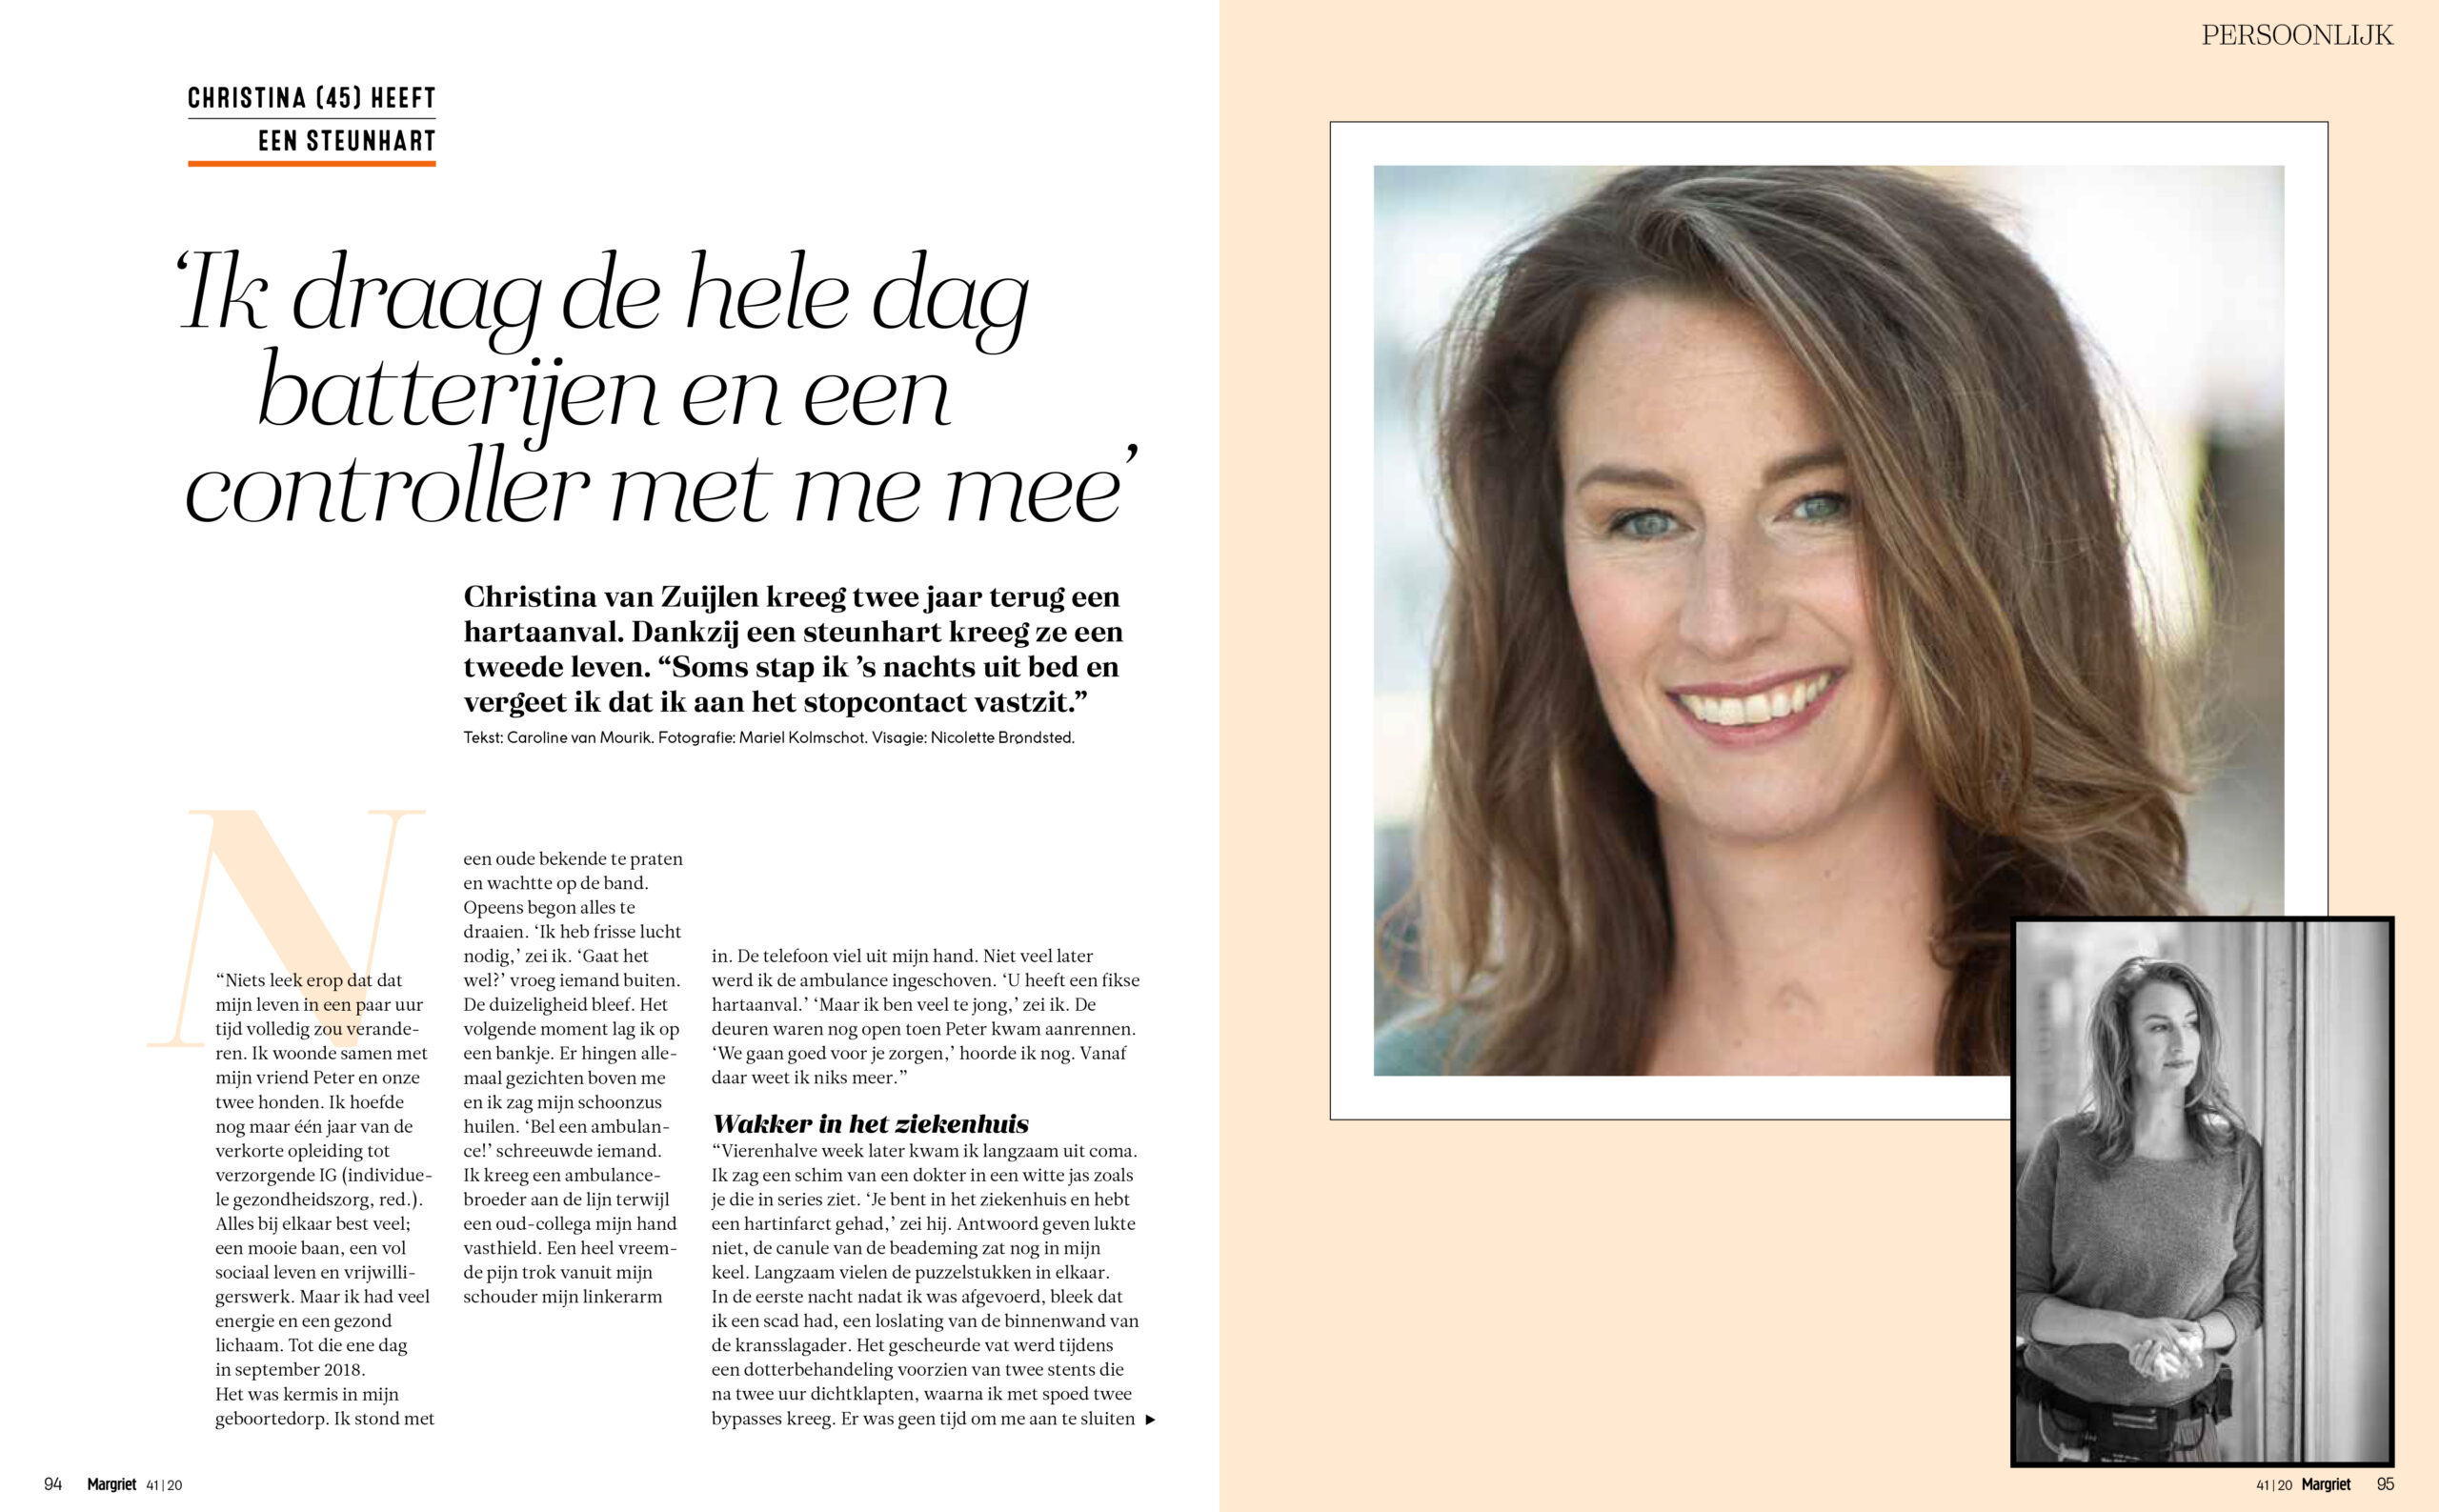 Christina heeft een steunhart | Just published |Margriet